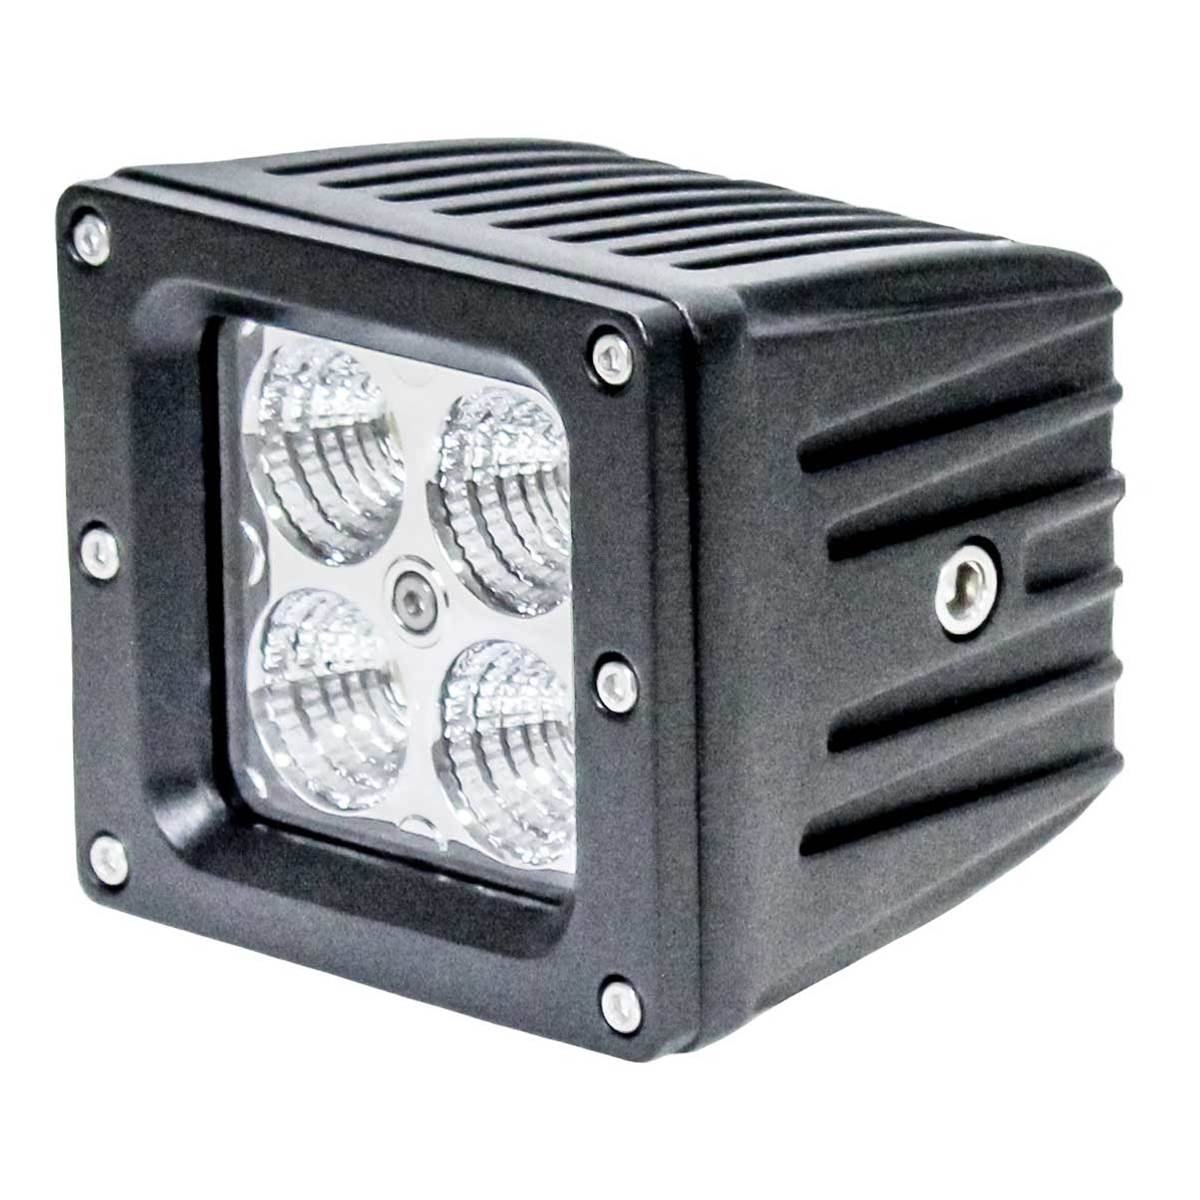 "KM LED 3"" x 3"" Light - Flood Beam"